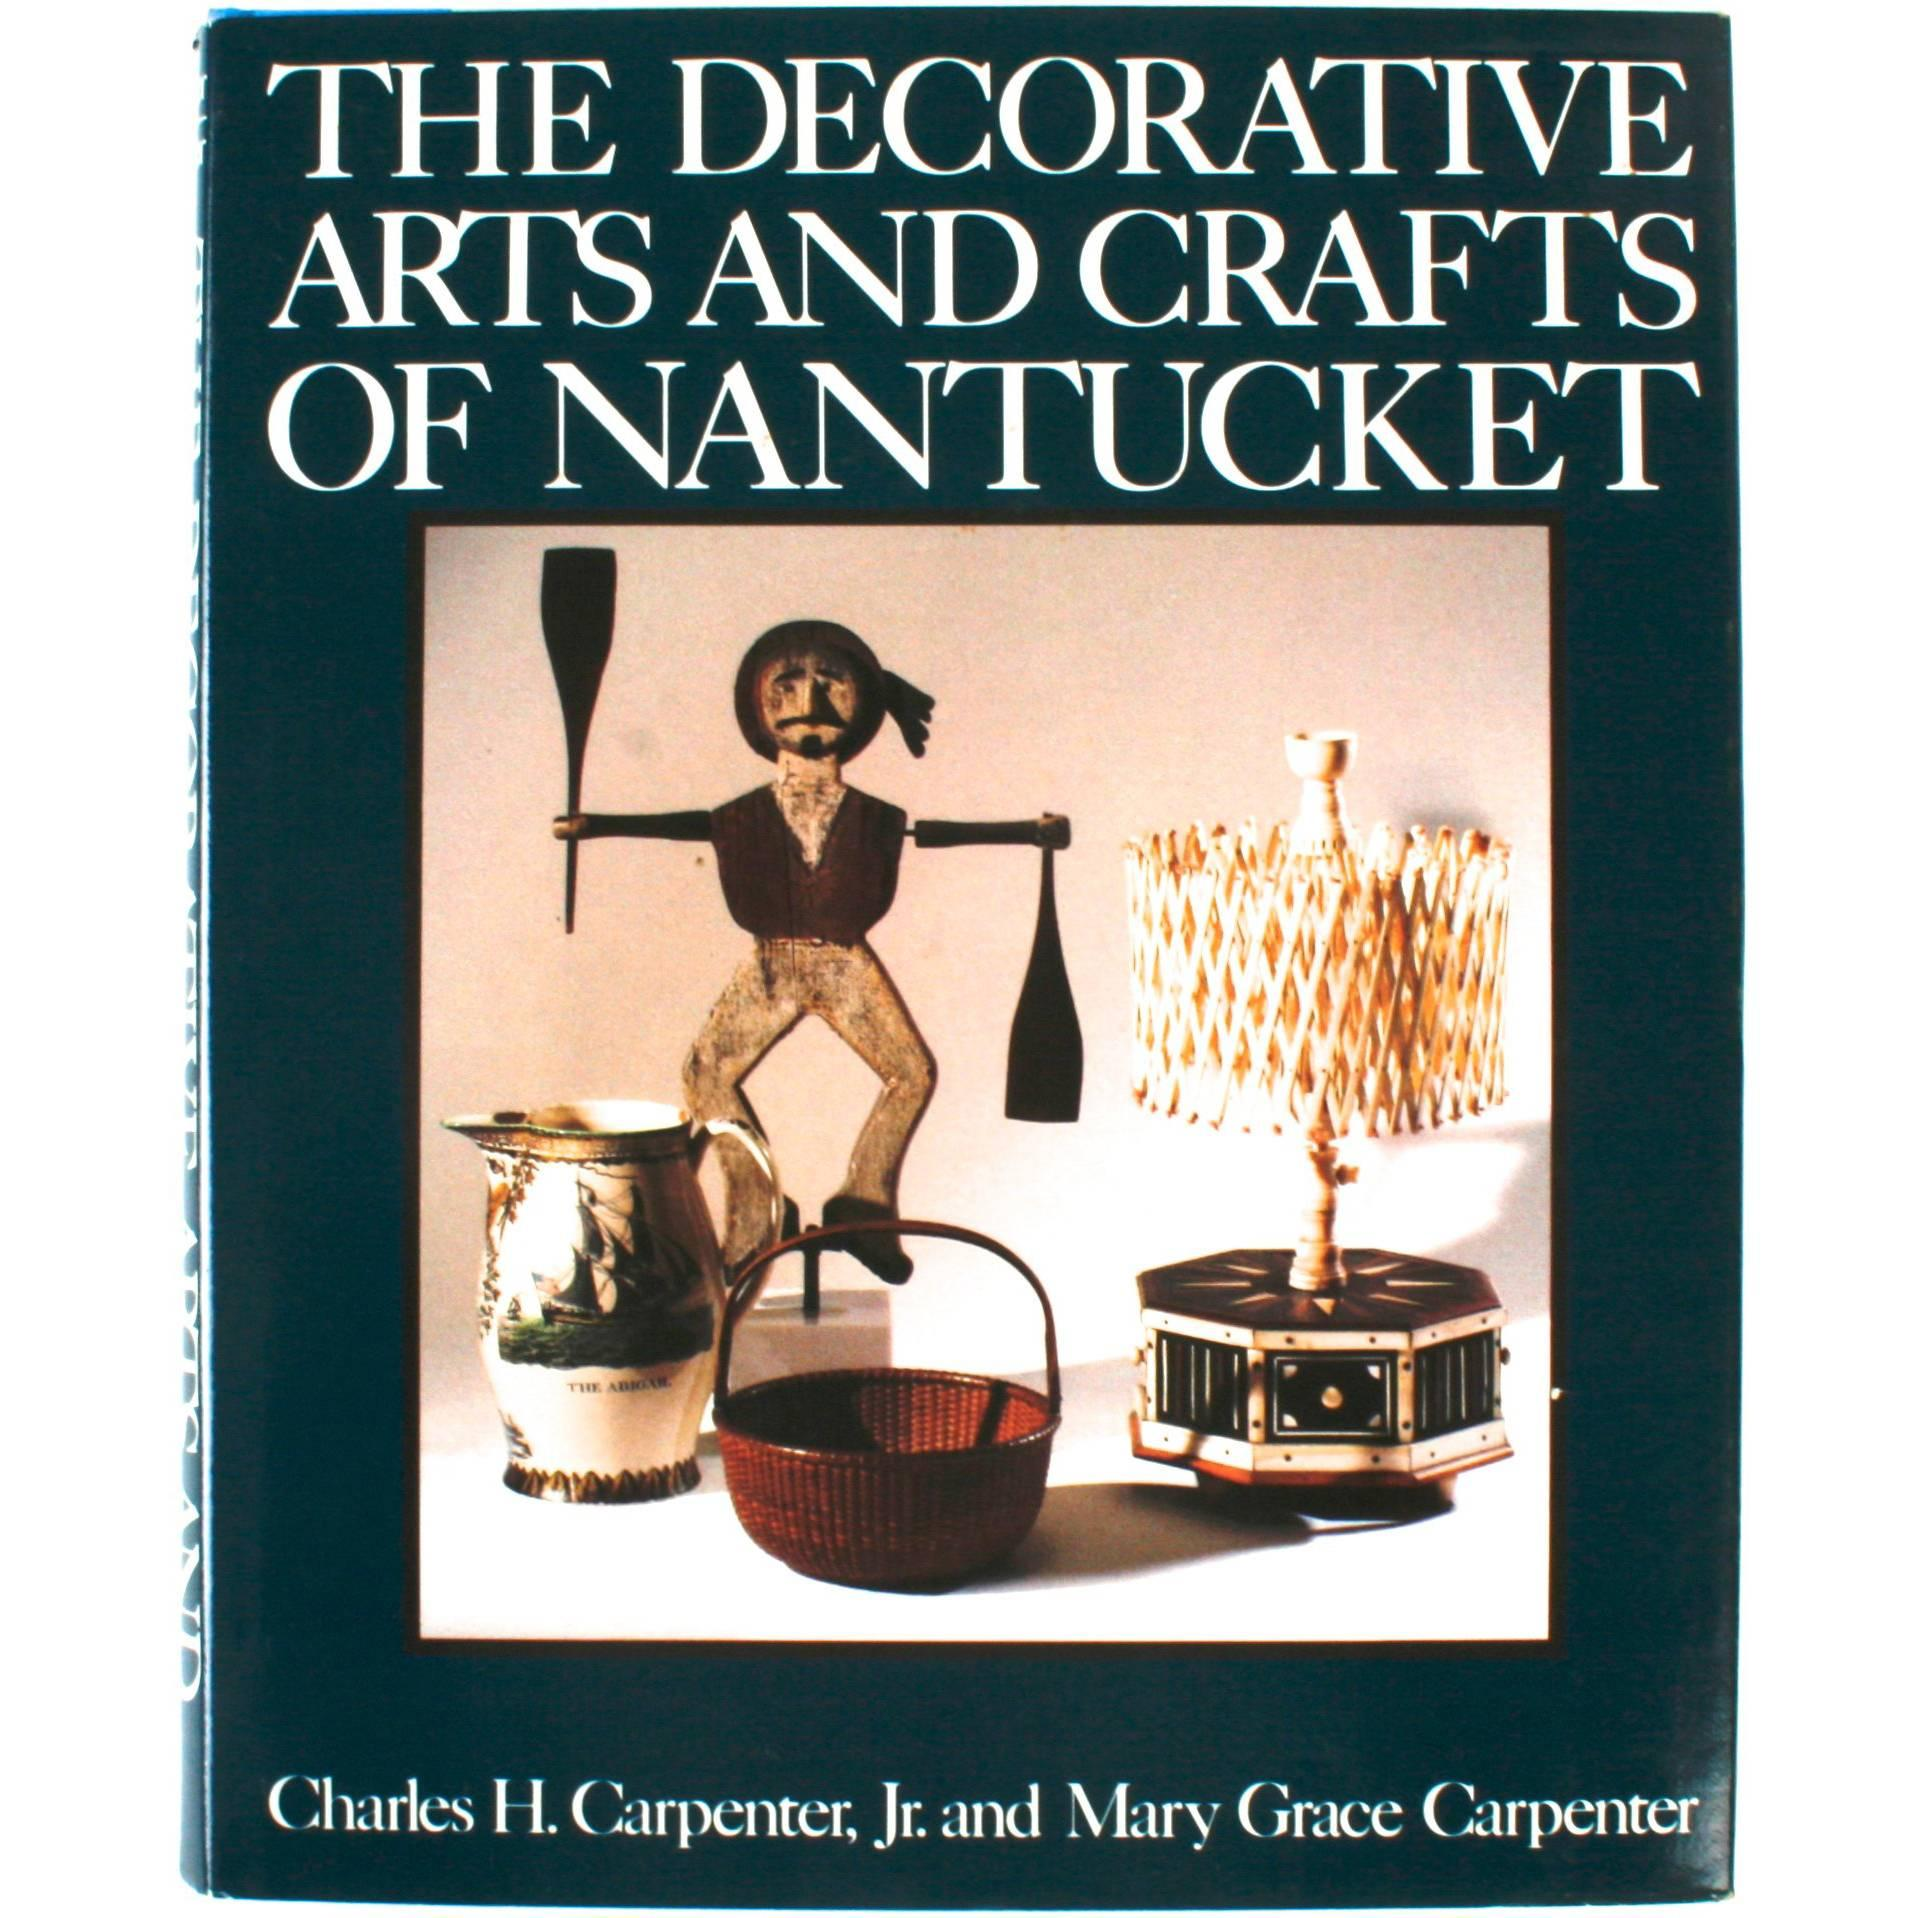 The Decorative Arts and Crafts of Nantucket, First Edition